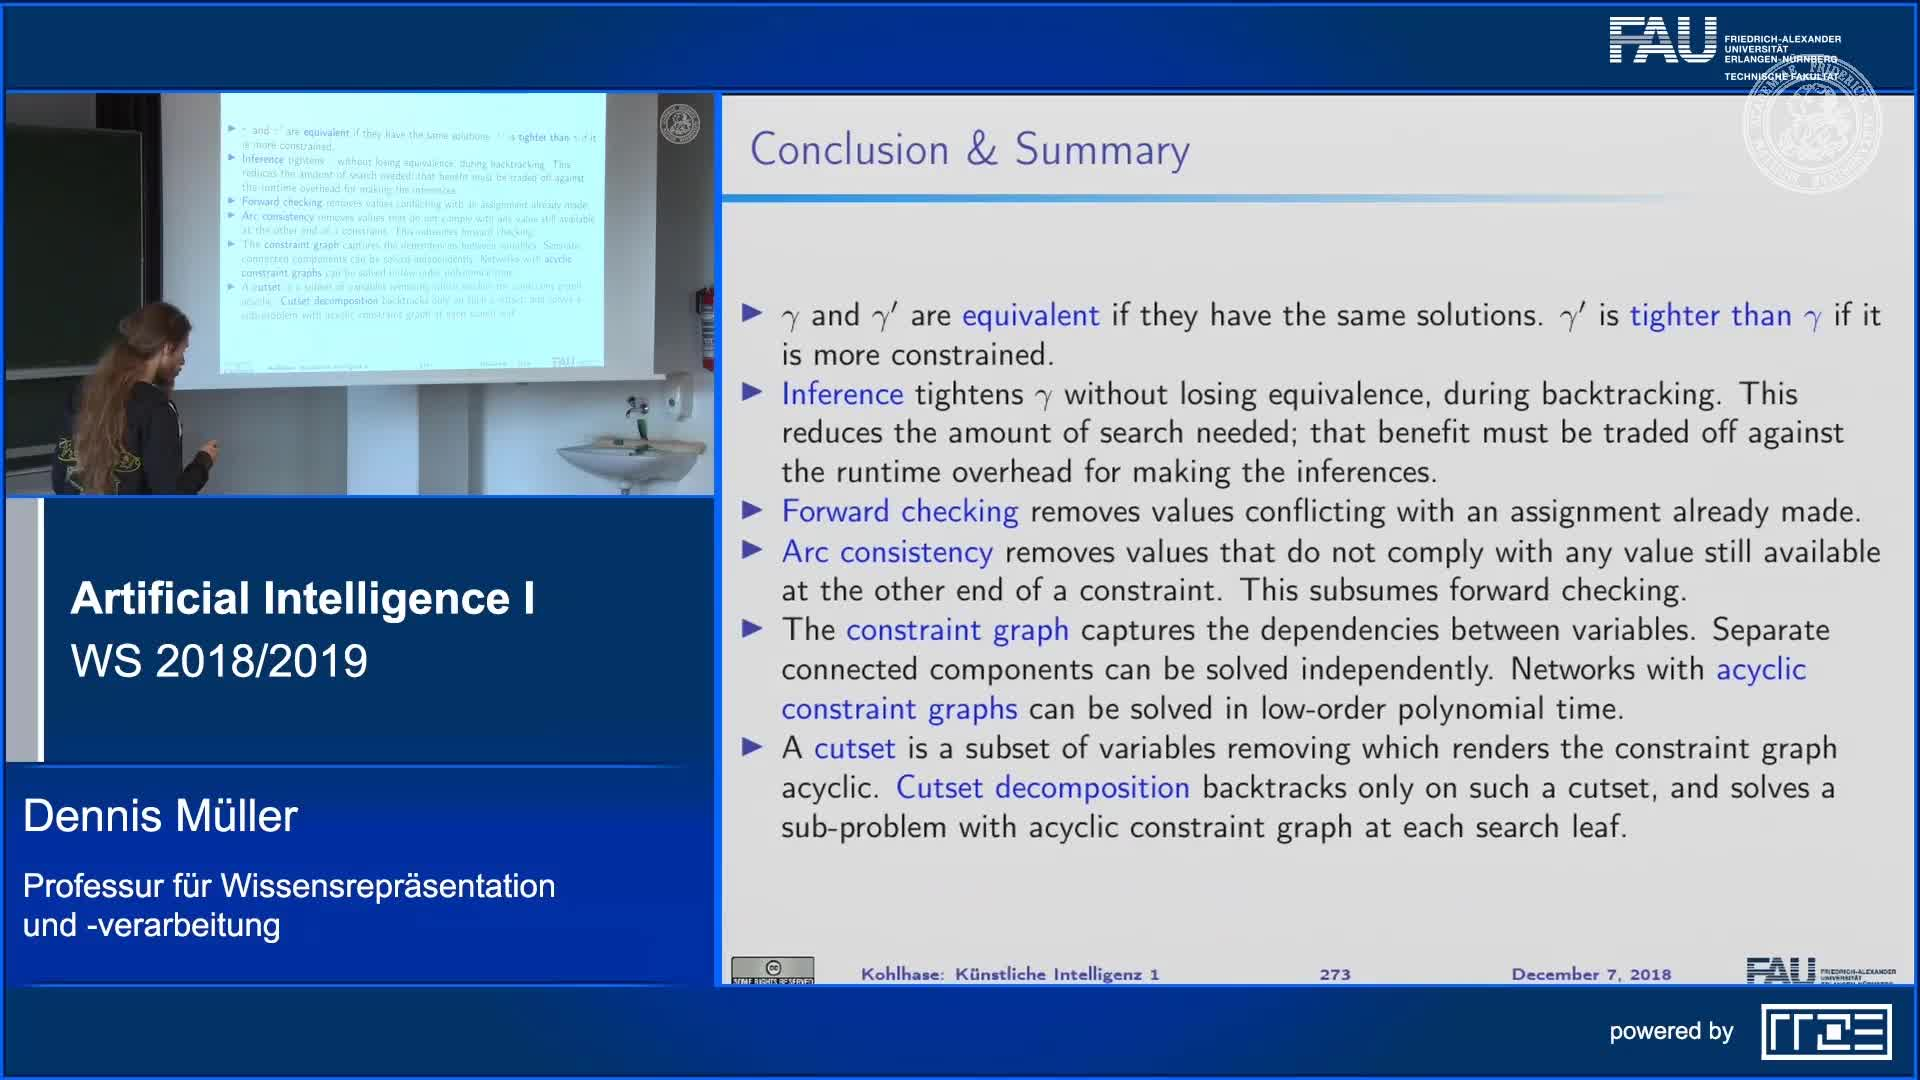 Conclusion & Summary preview image